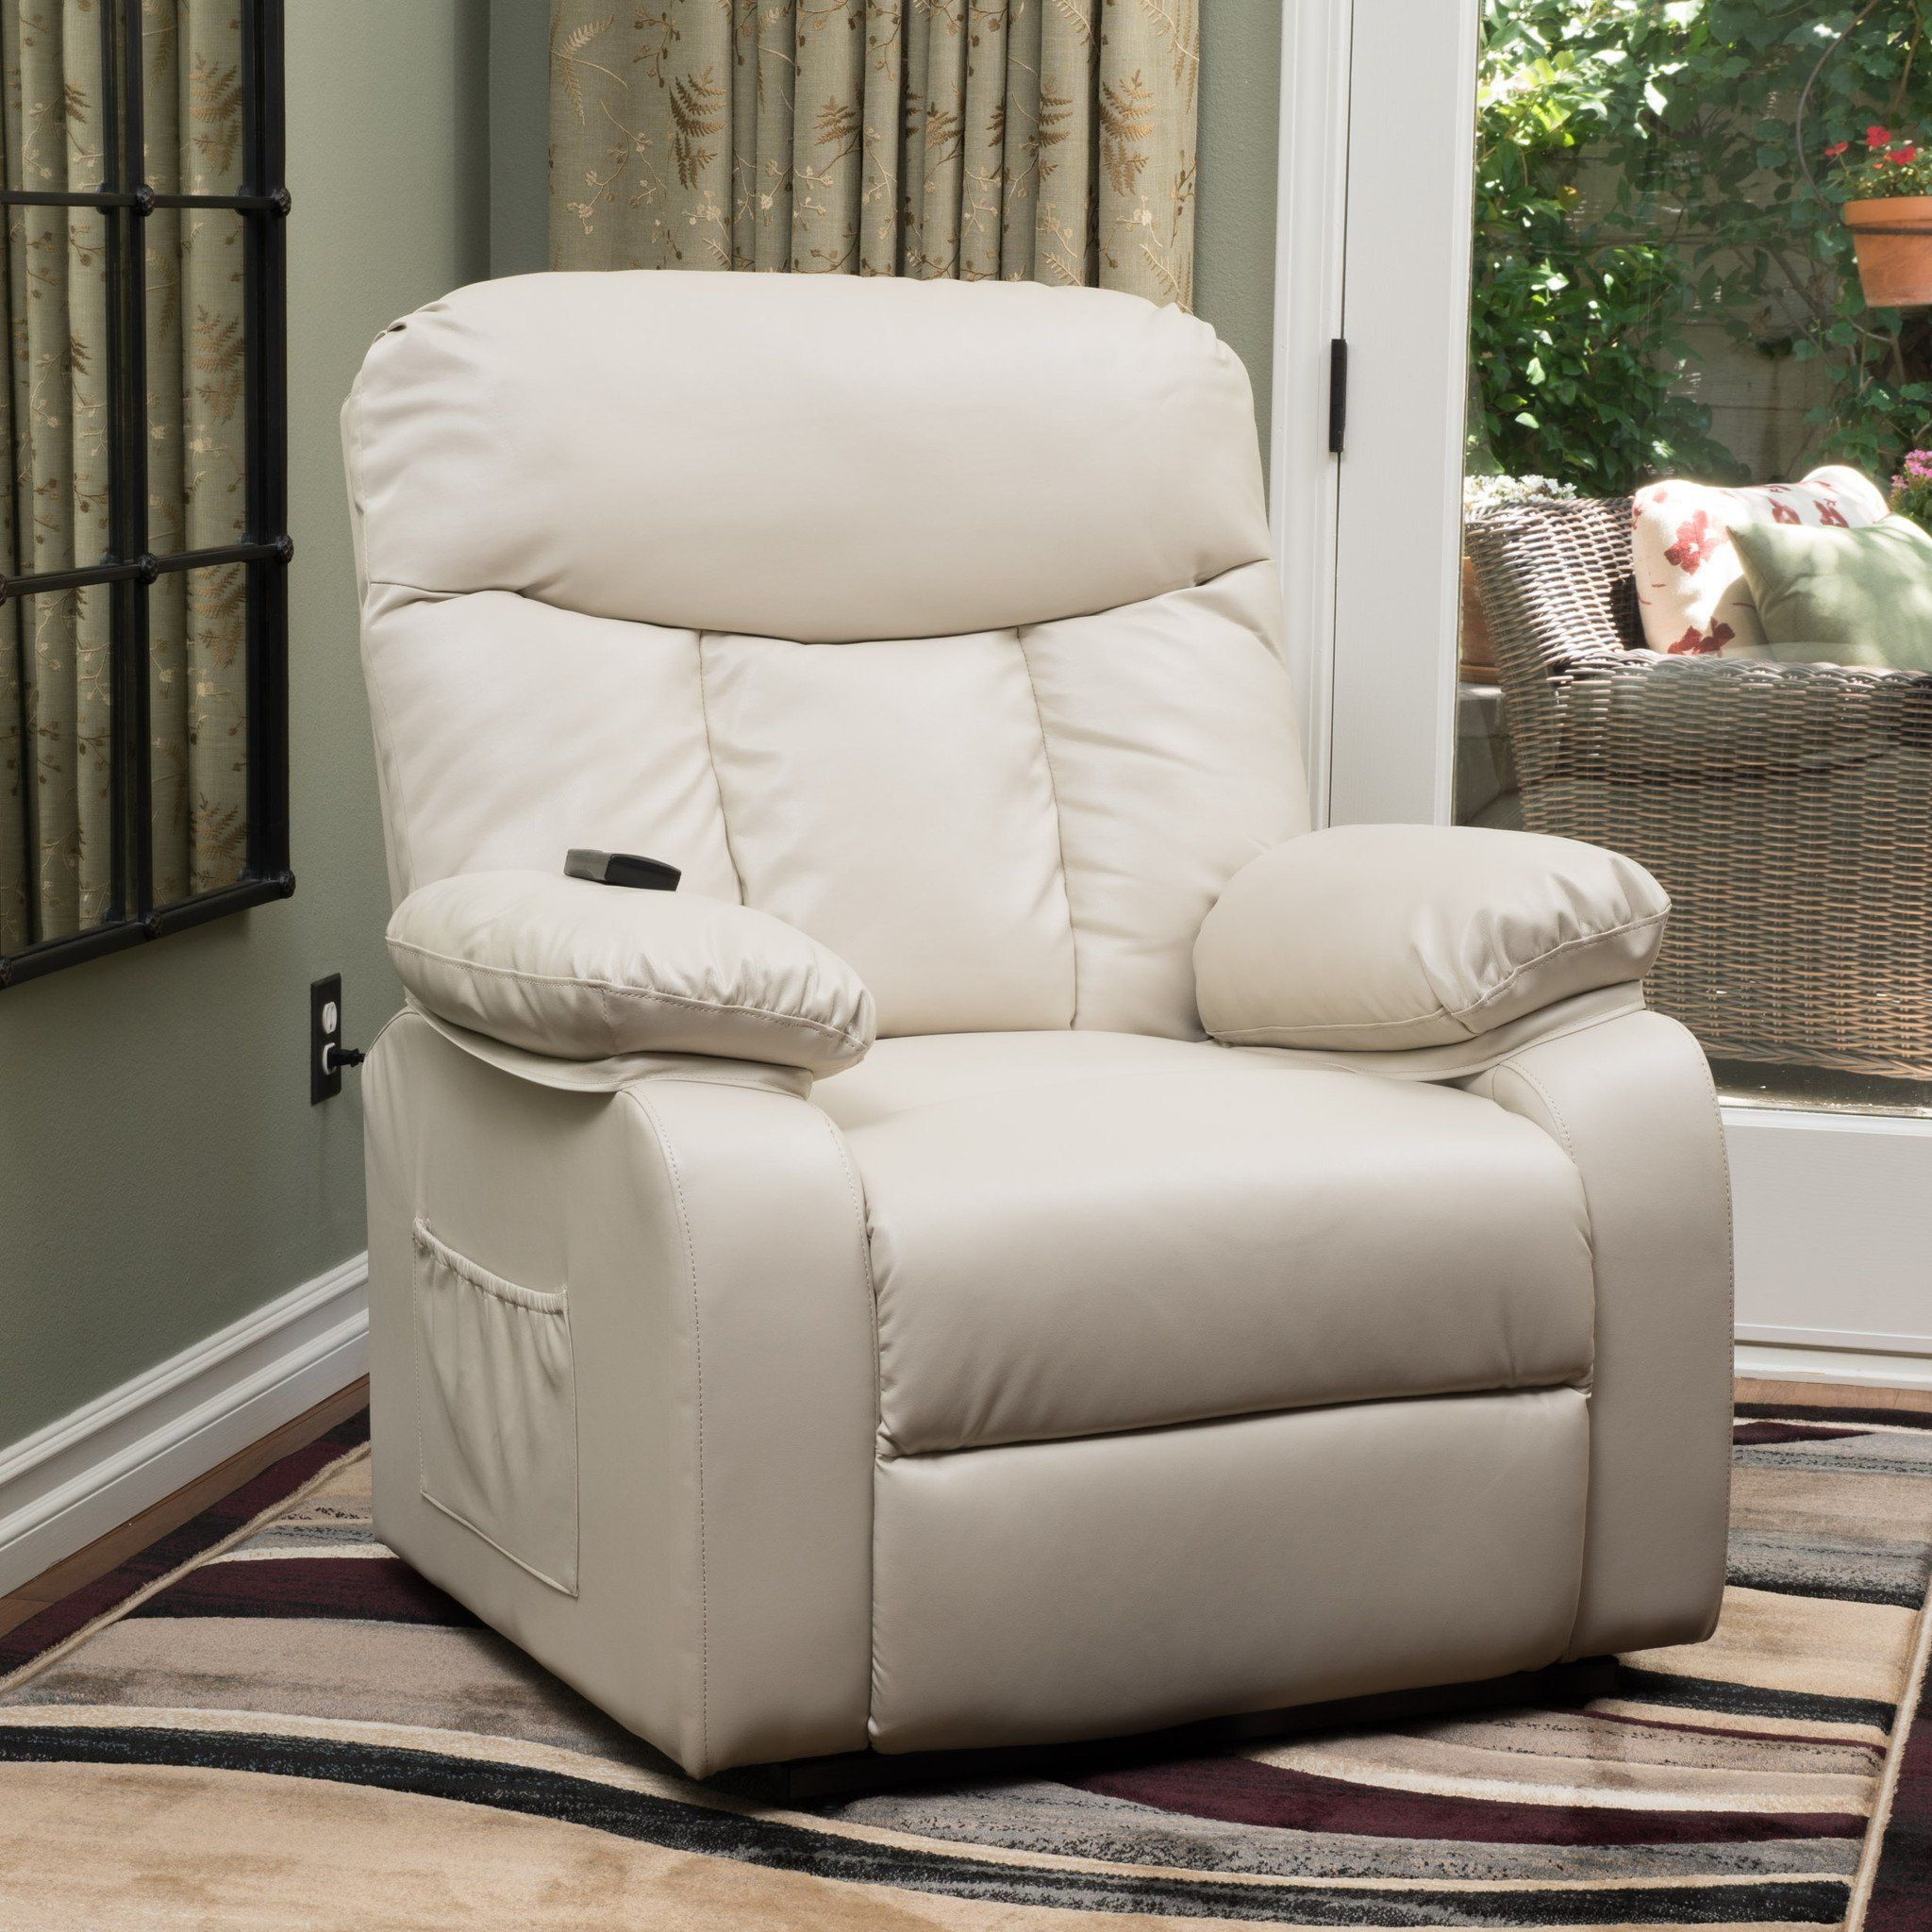 Edenton Leather Lift Up Recliner Chair